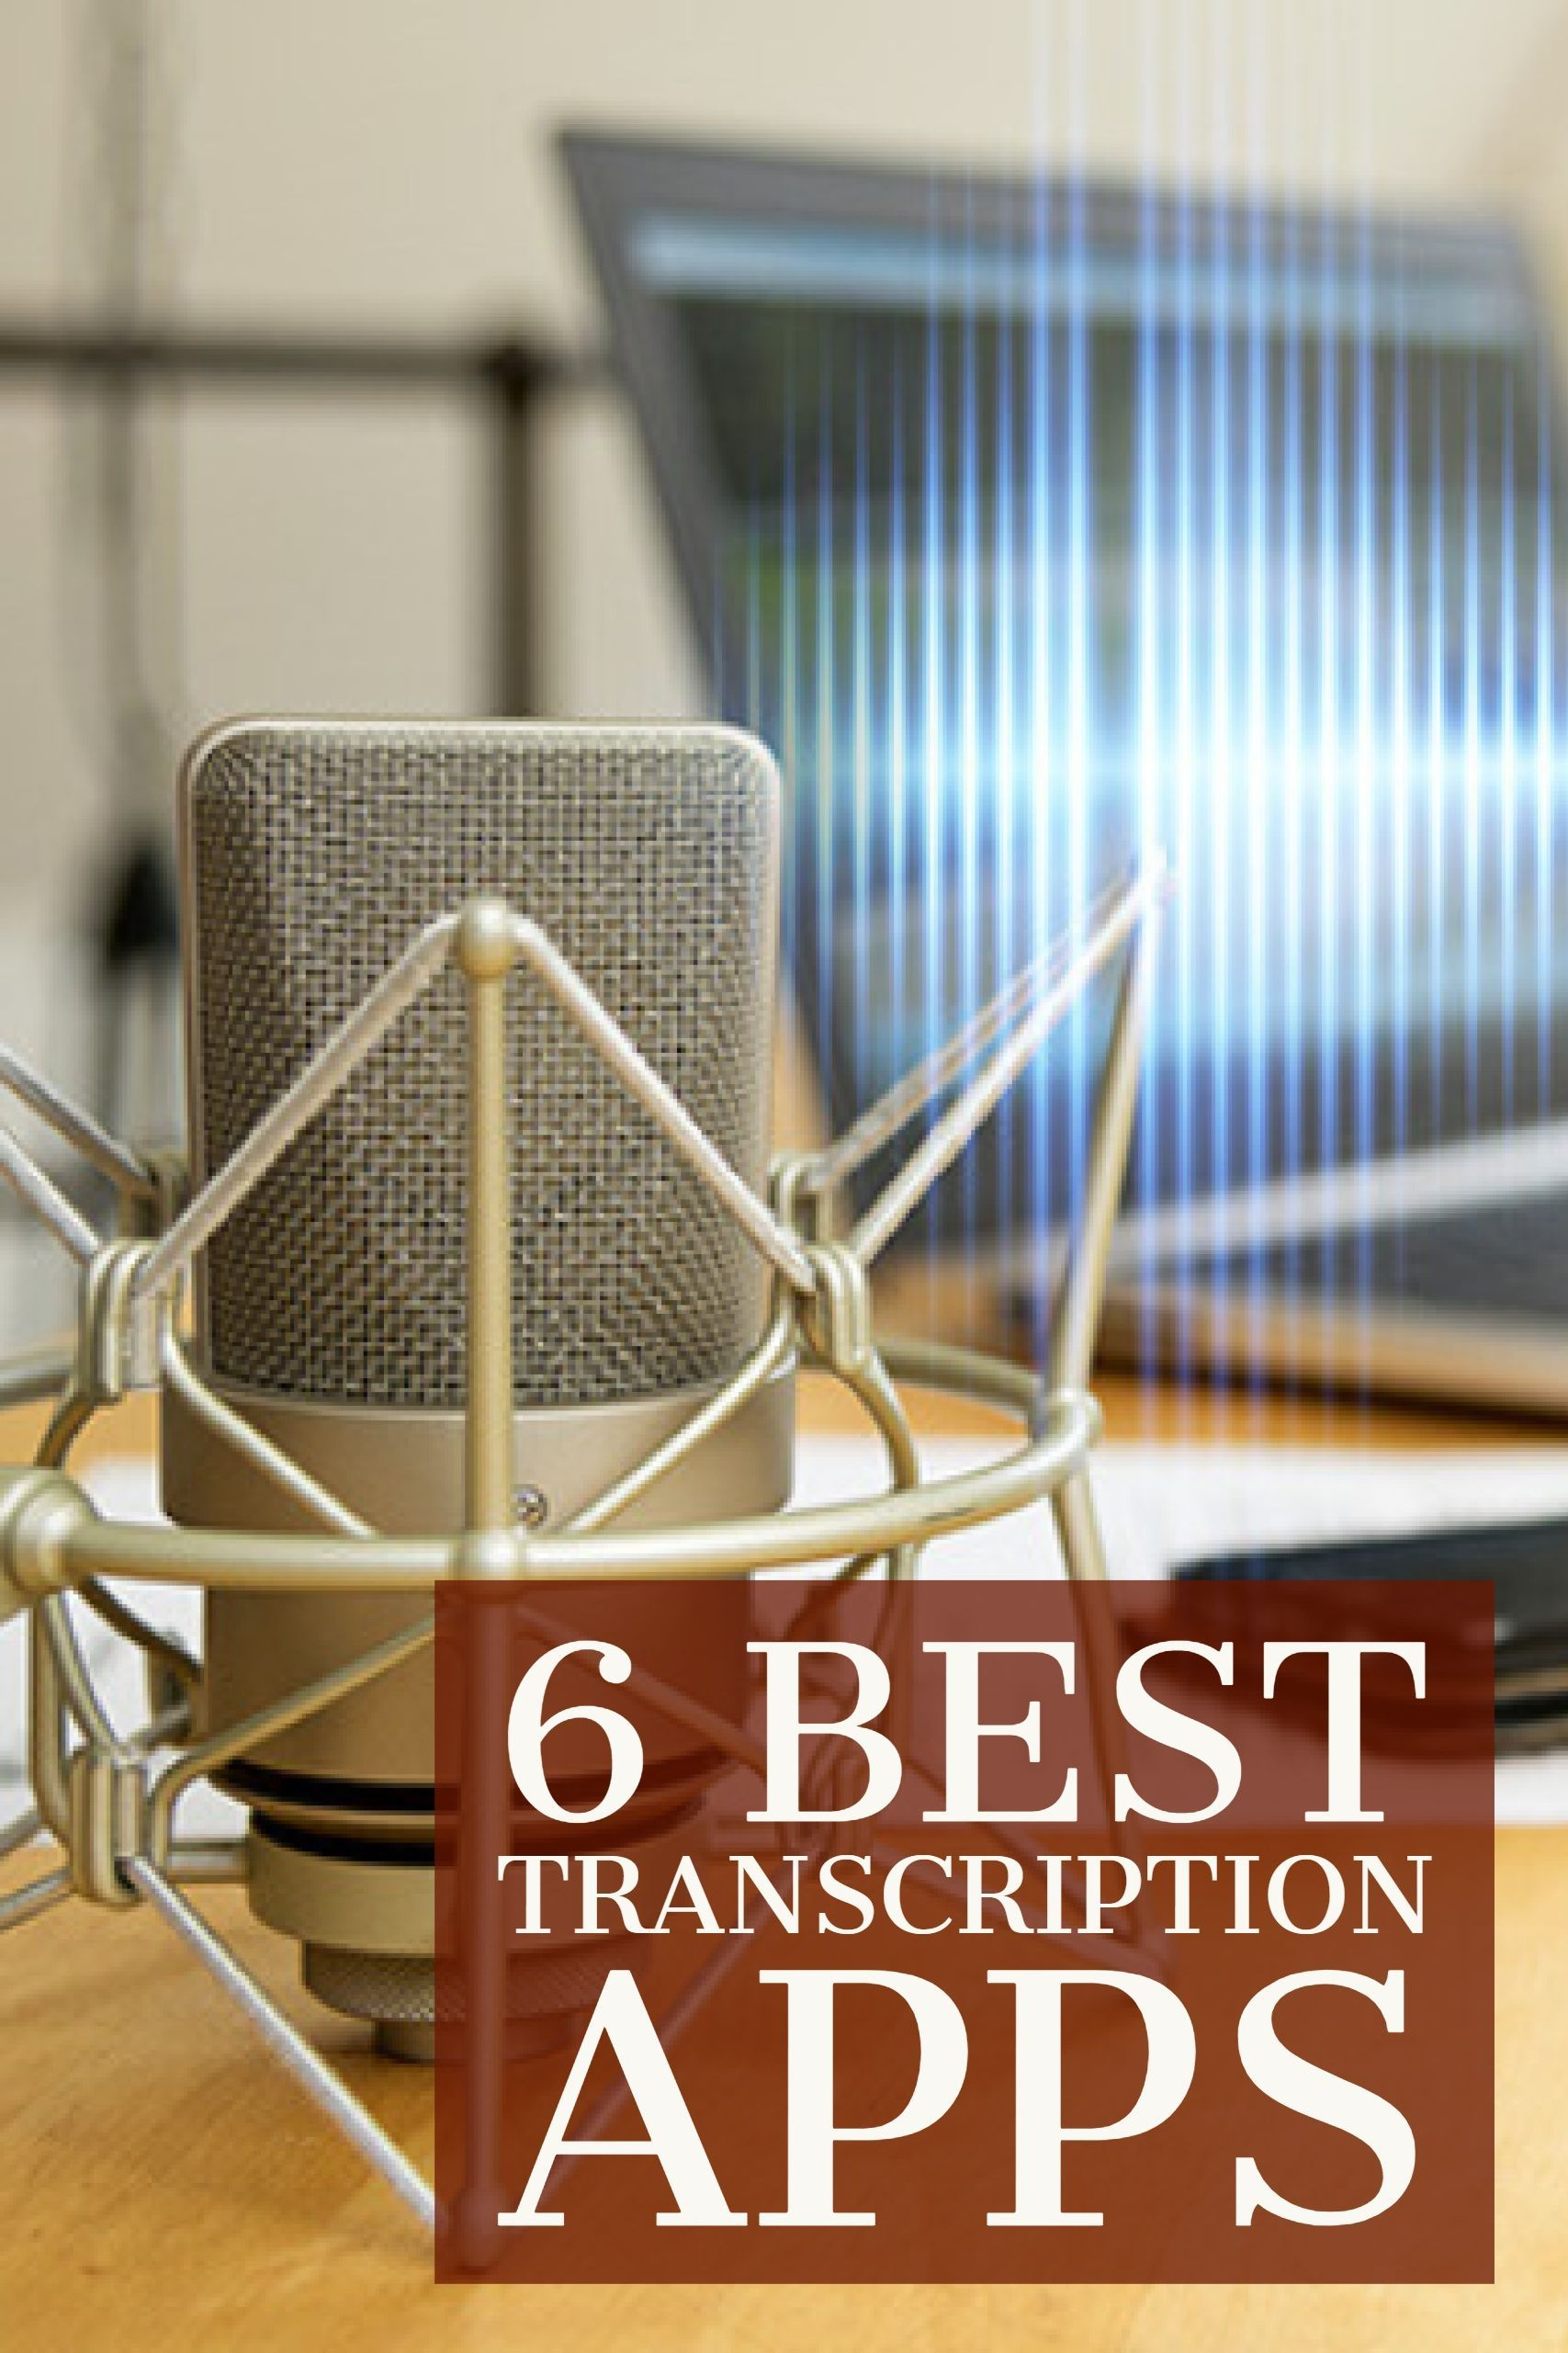 The Best Transcription Services Good apps for iphone